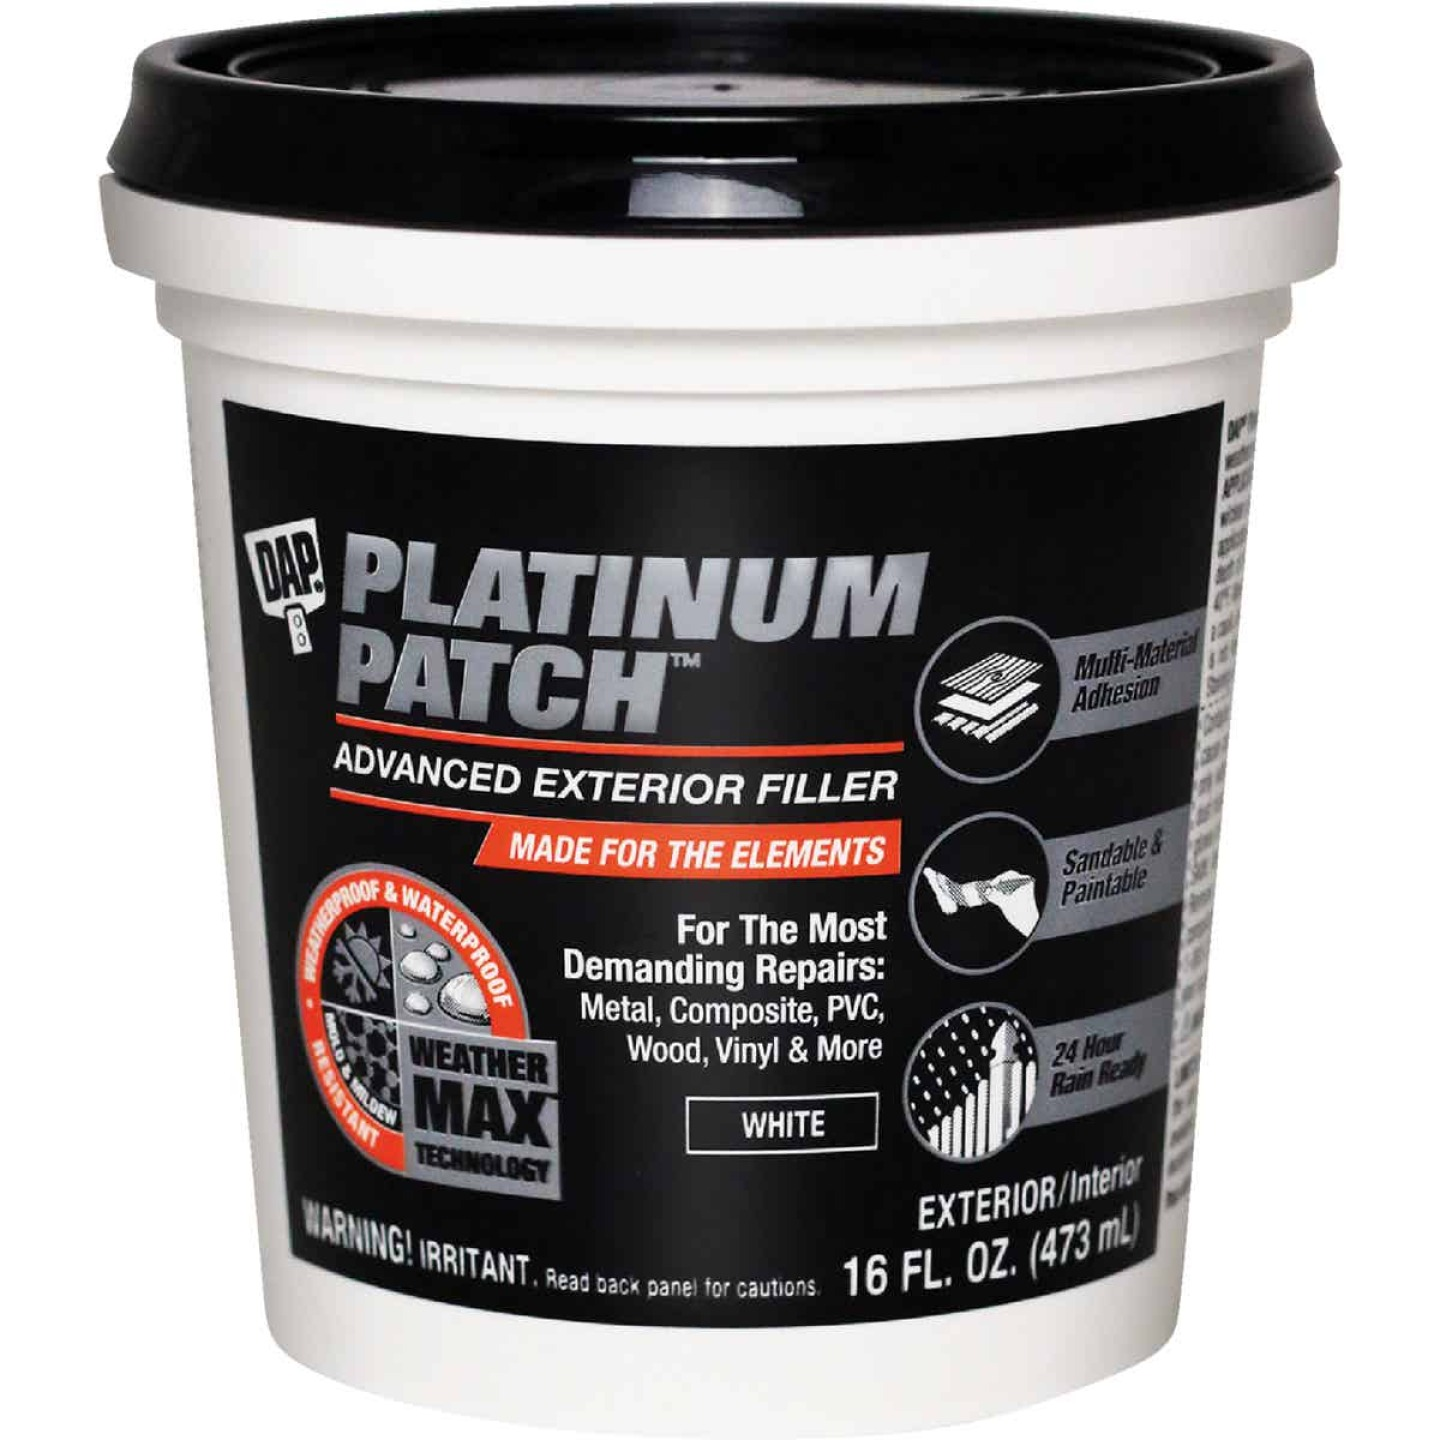 Dap Platinum Patch 16 Oz. Advanced Interior/Exterior Spackling Filler Image 1